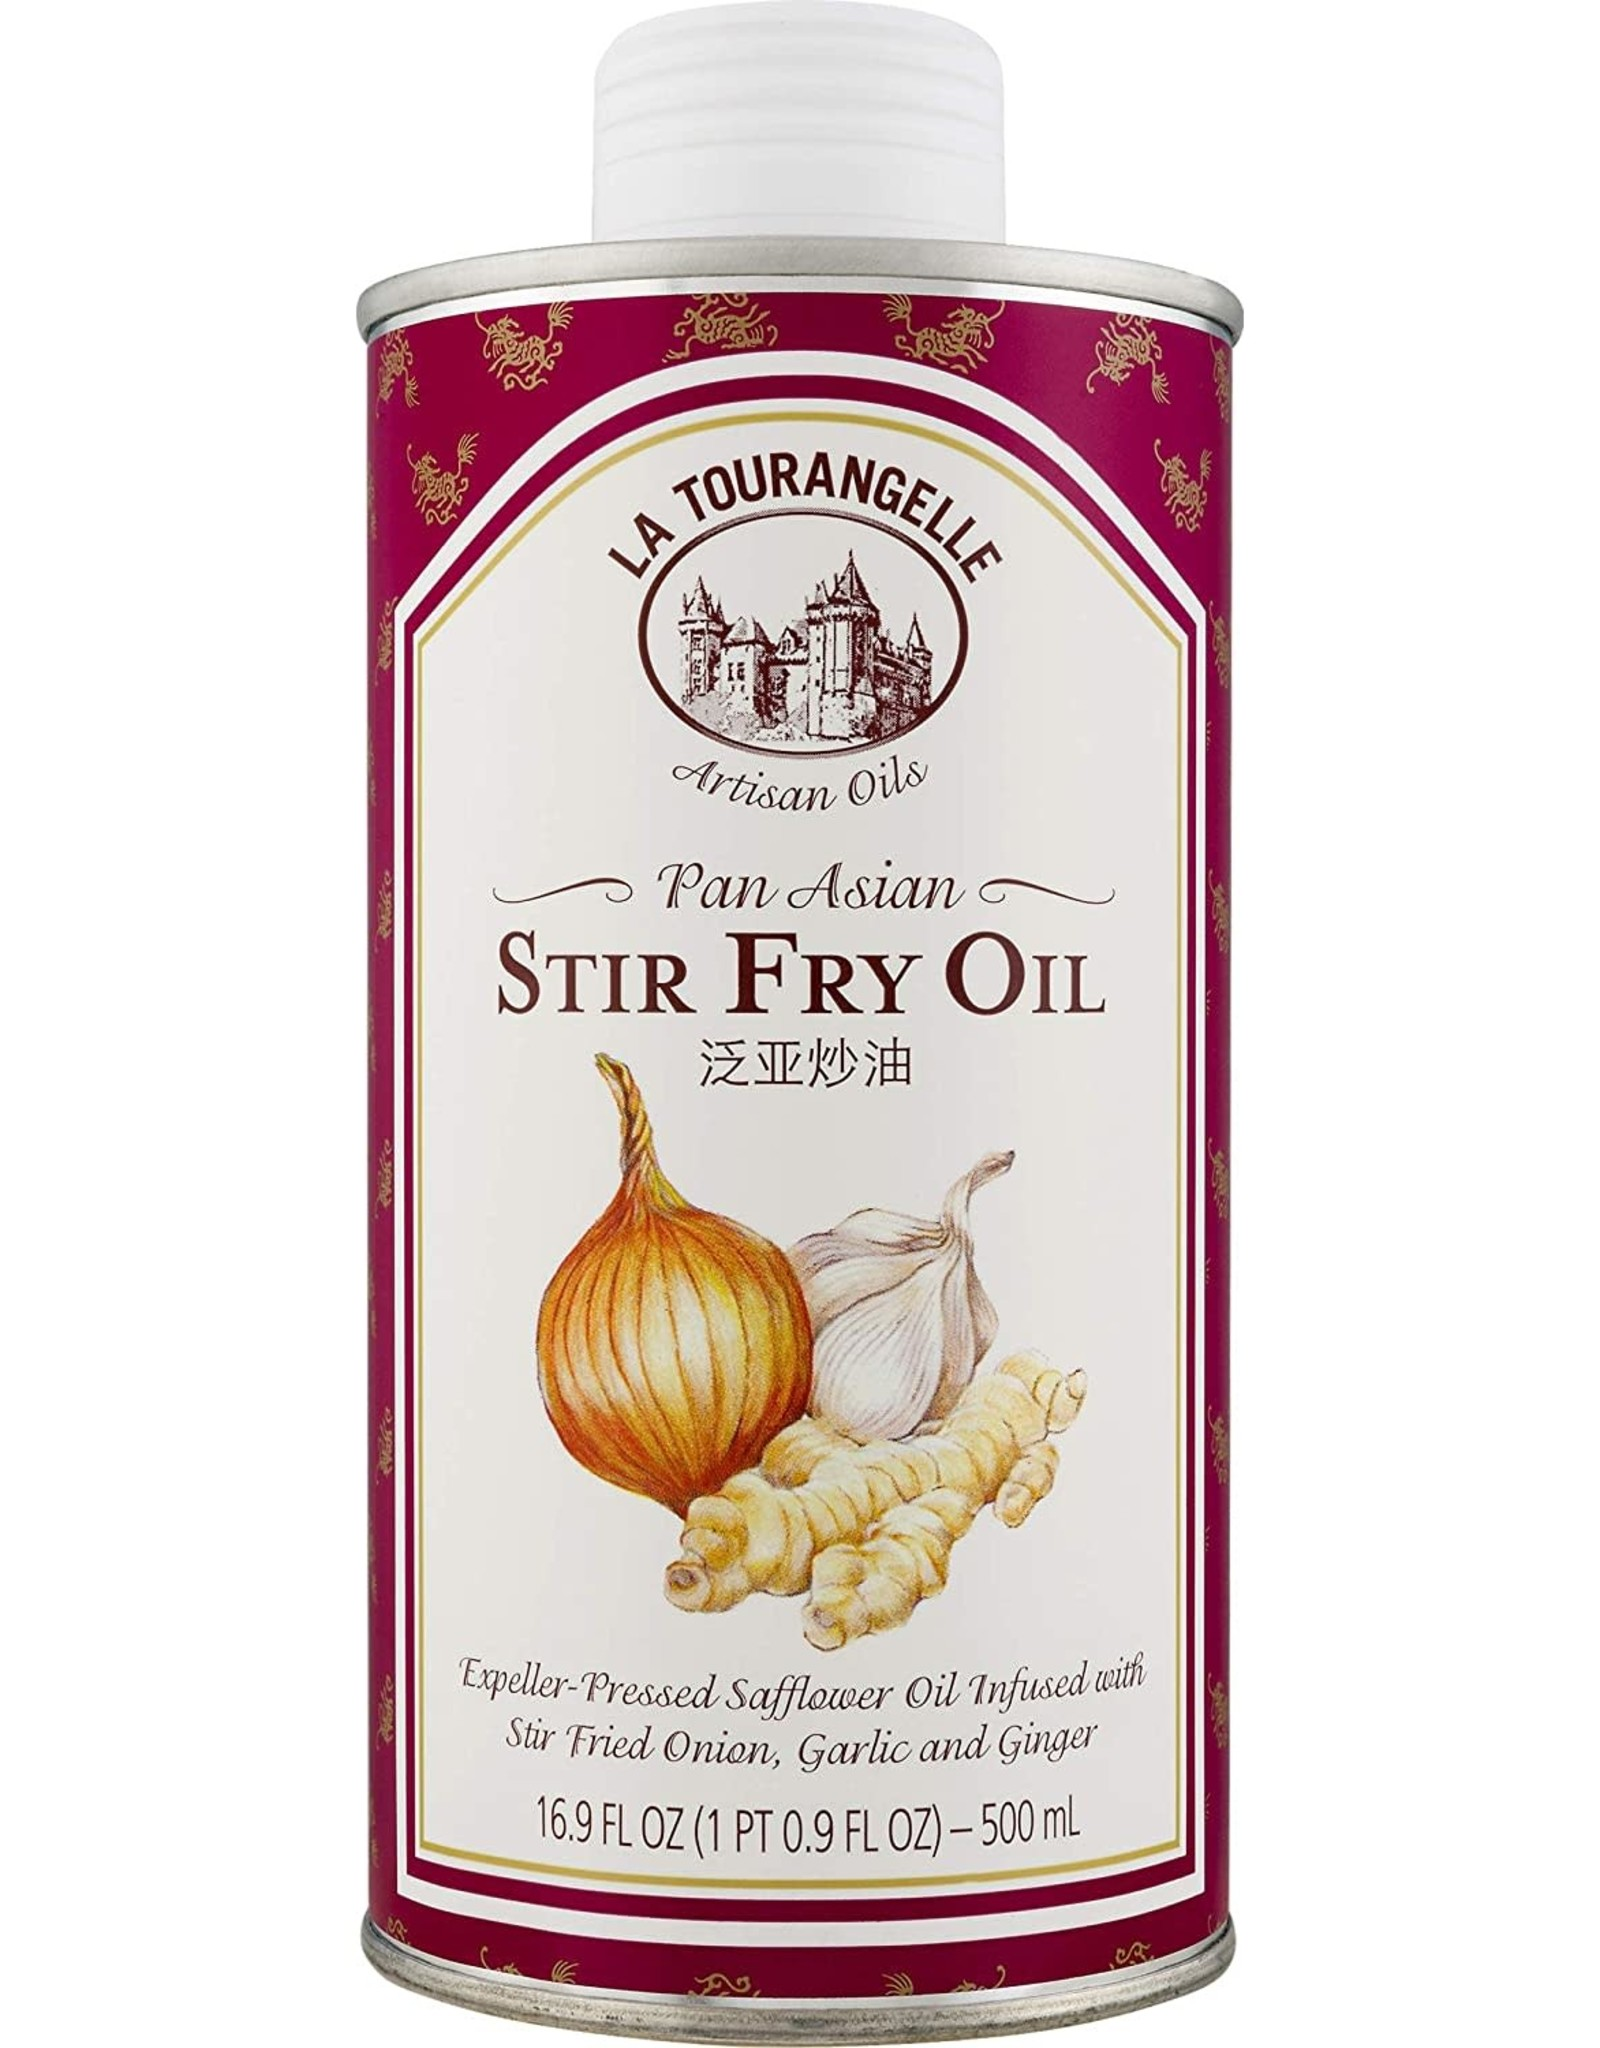 La Tourangelle La Tourangelle - Pan Asian Stir Fry Oil (250ml)